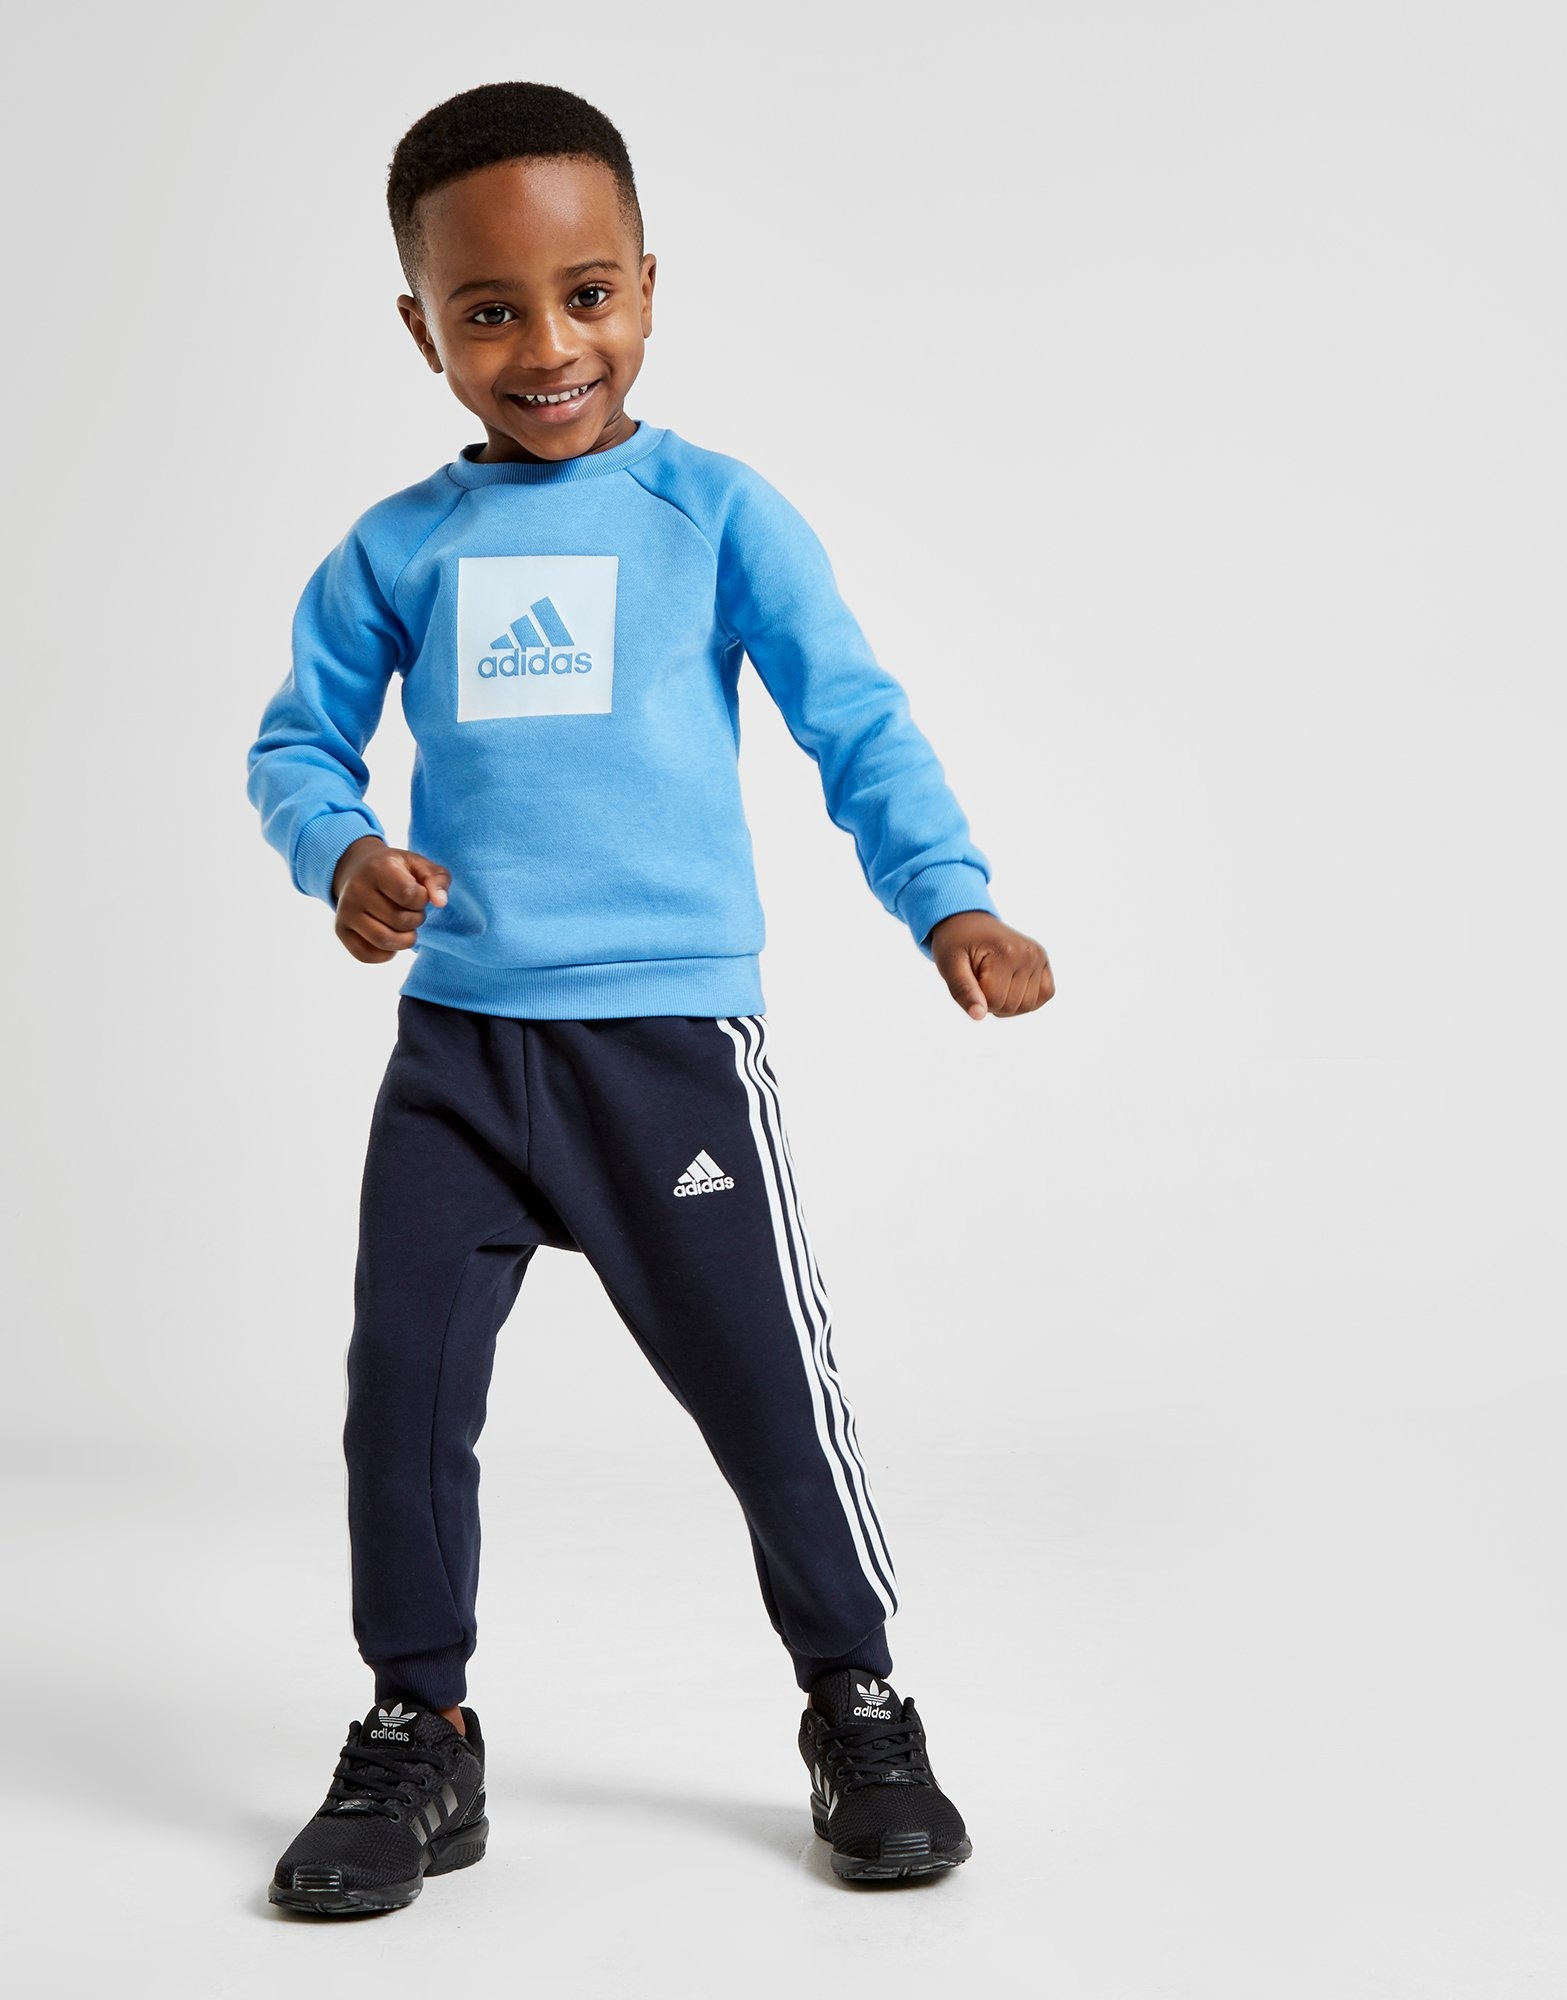 Ages 0-3 years. Jogging suit adidas infant boys blue//navy tracksuit